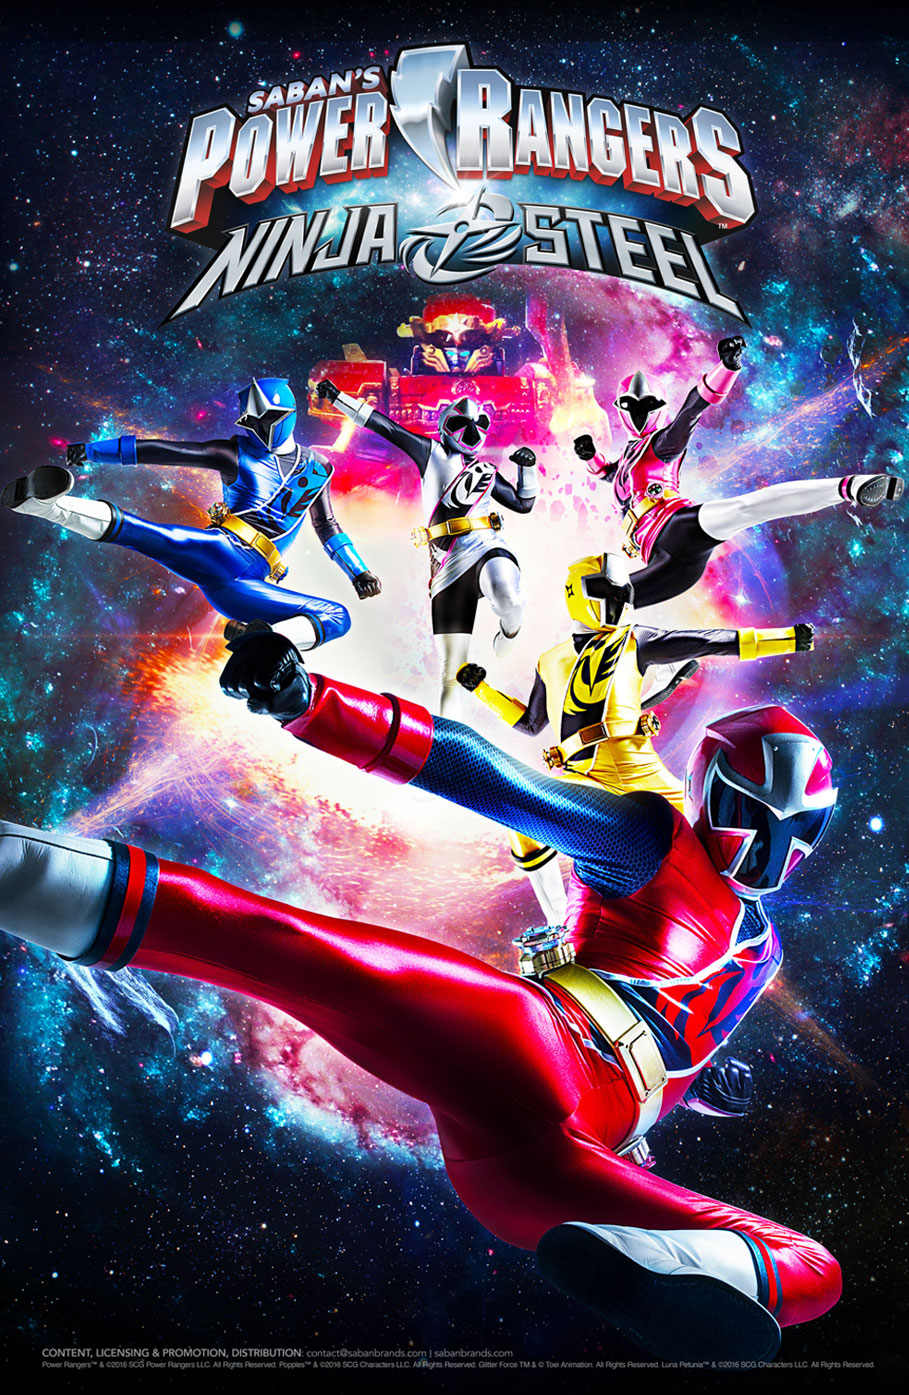 Power_Rangers_Ninja_Steel_Poster.jpg